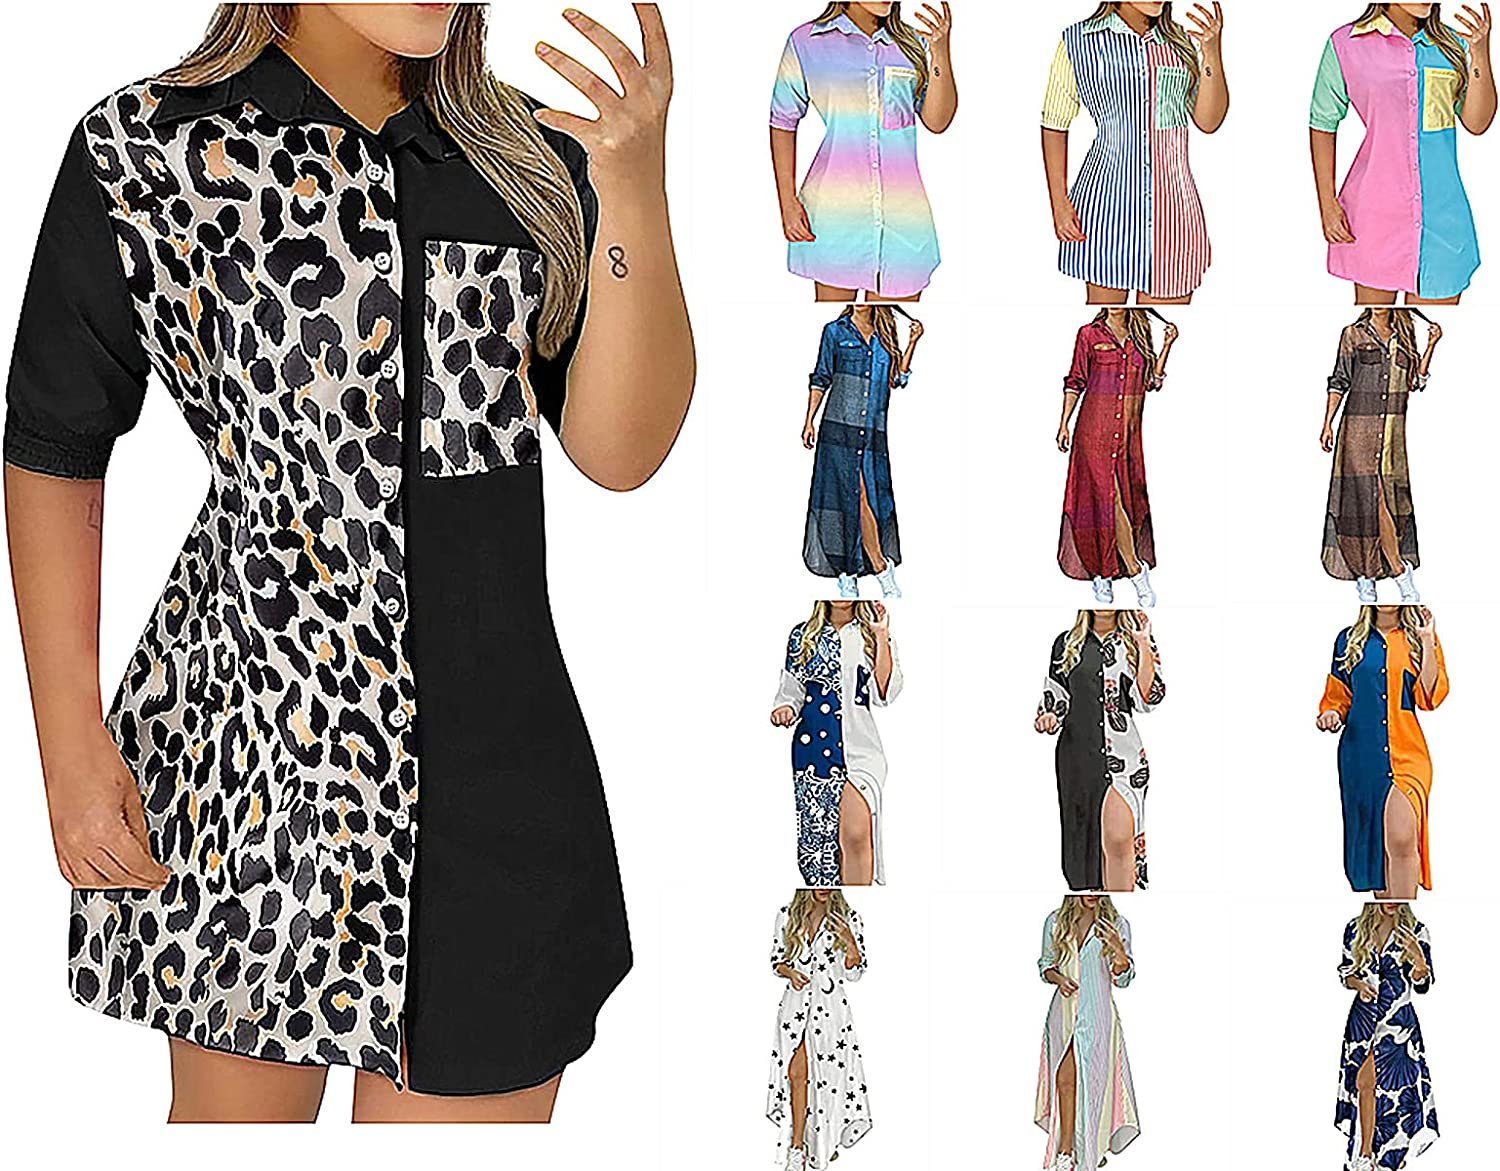 Women's Short-Sleeved Shirt Jacket Casual Tie-Dye Collision Color Buttons Dress Pocket